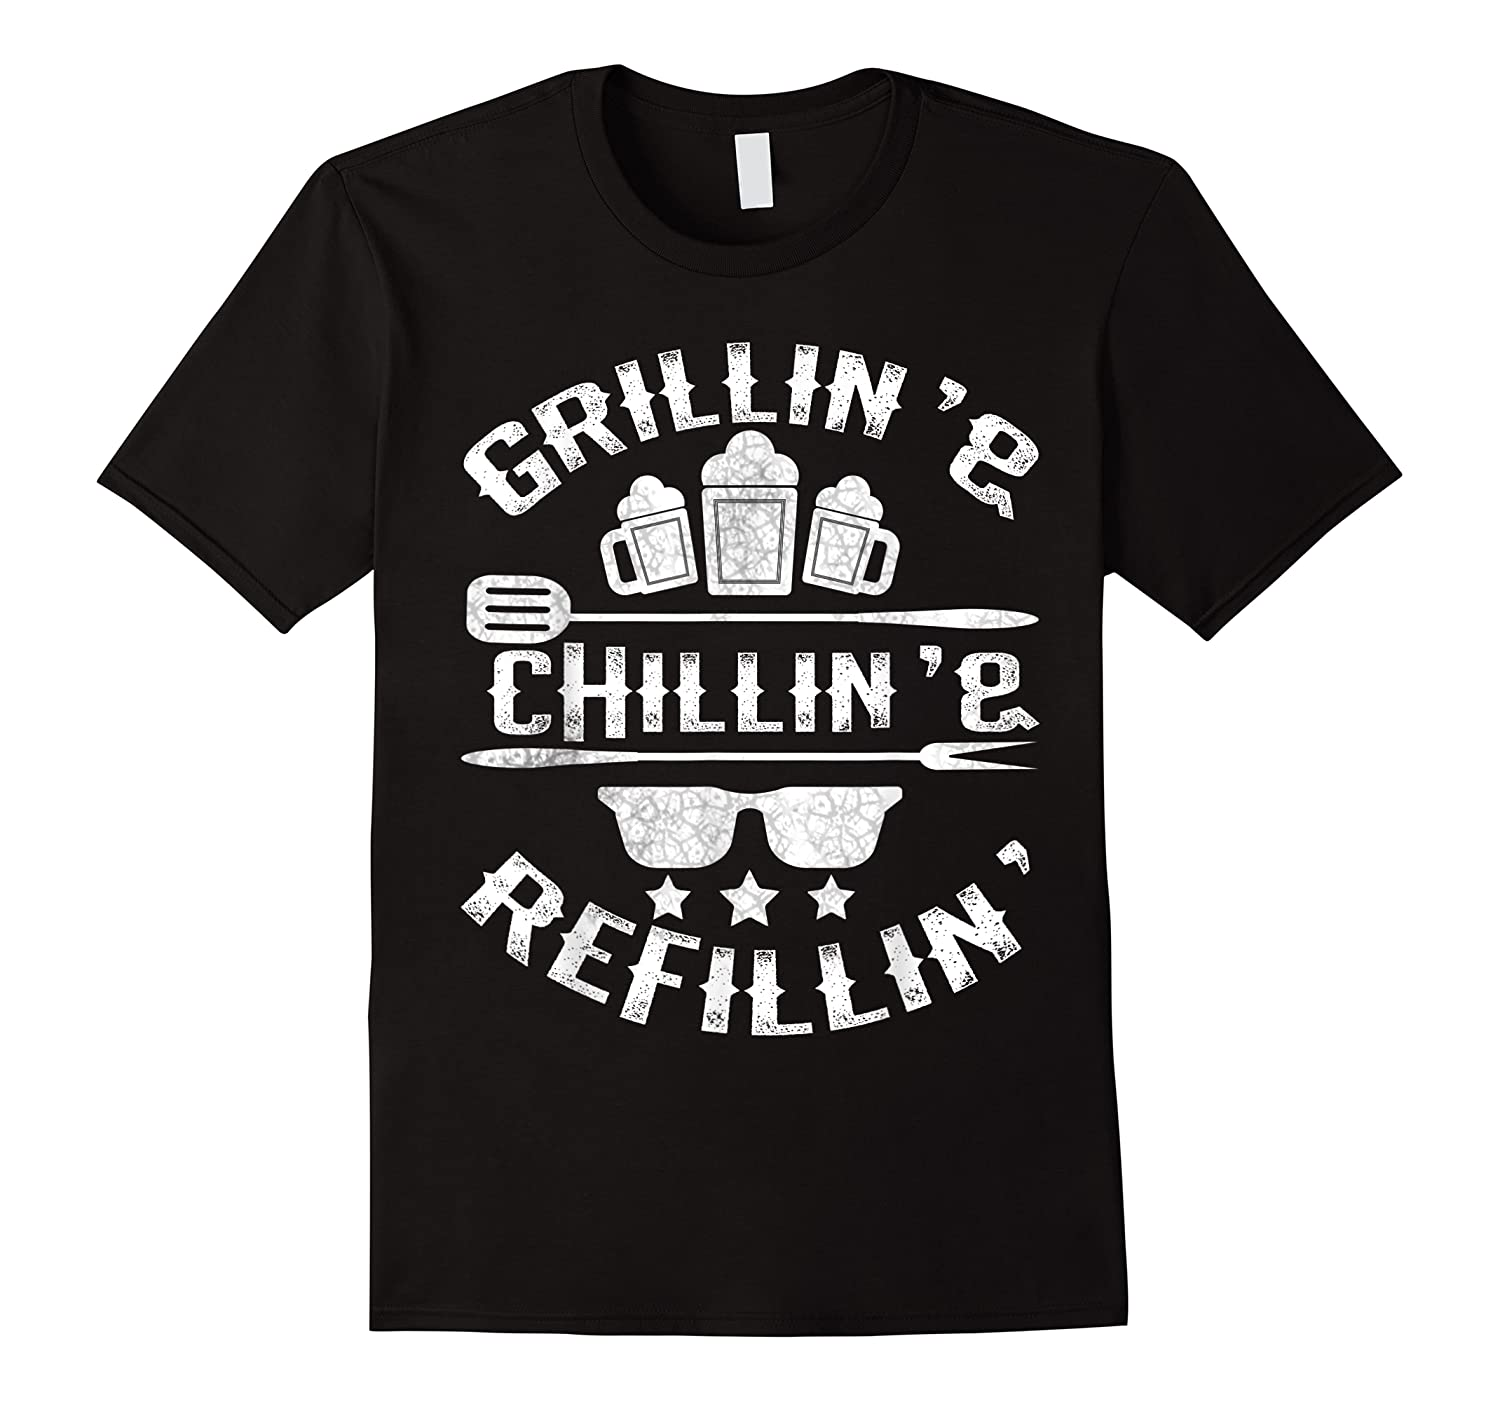 Grilling Chilling Refilling Shirts